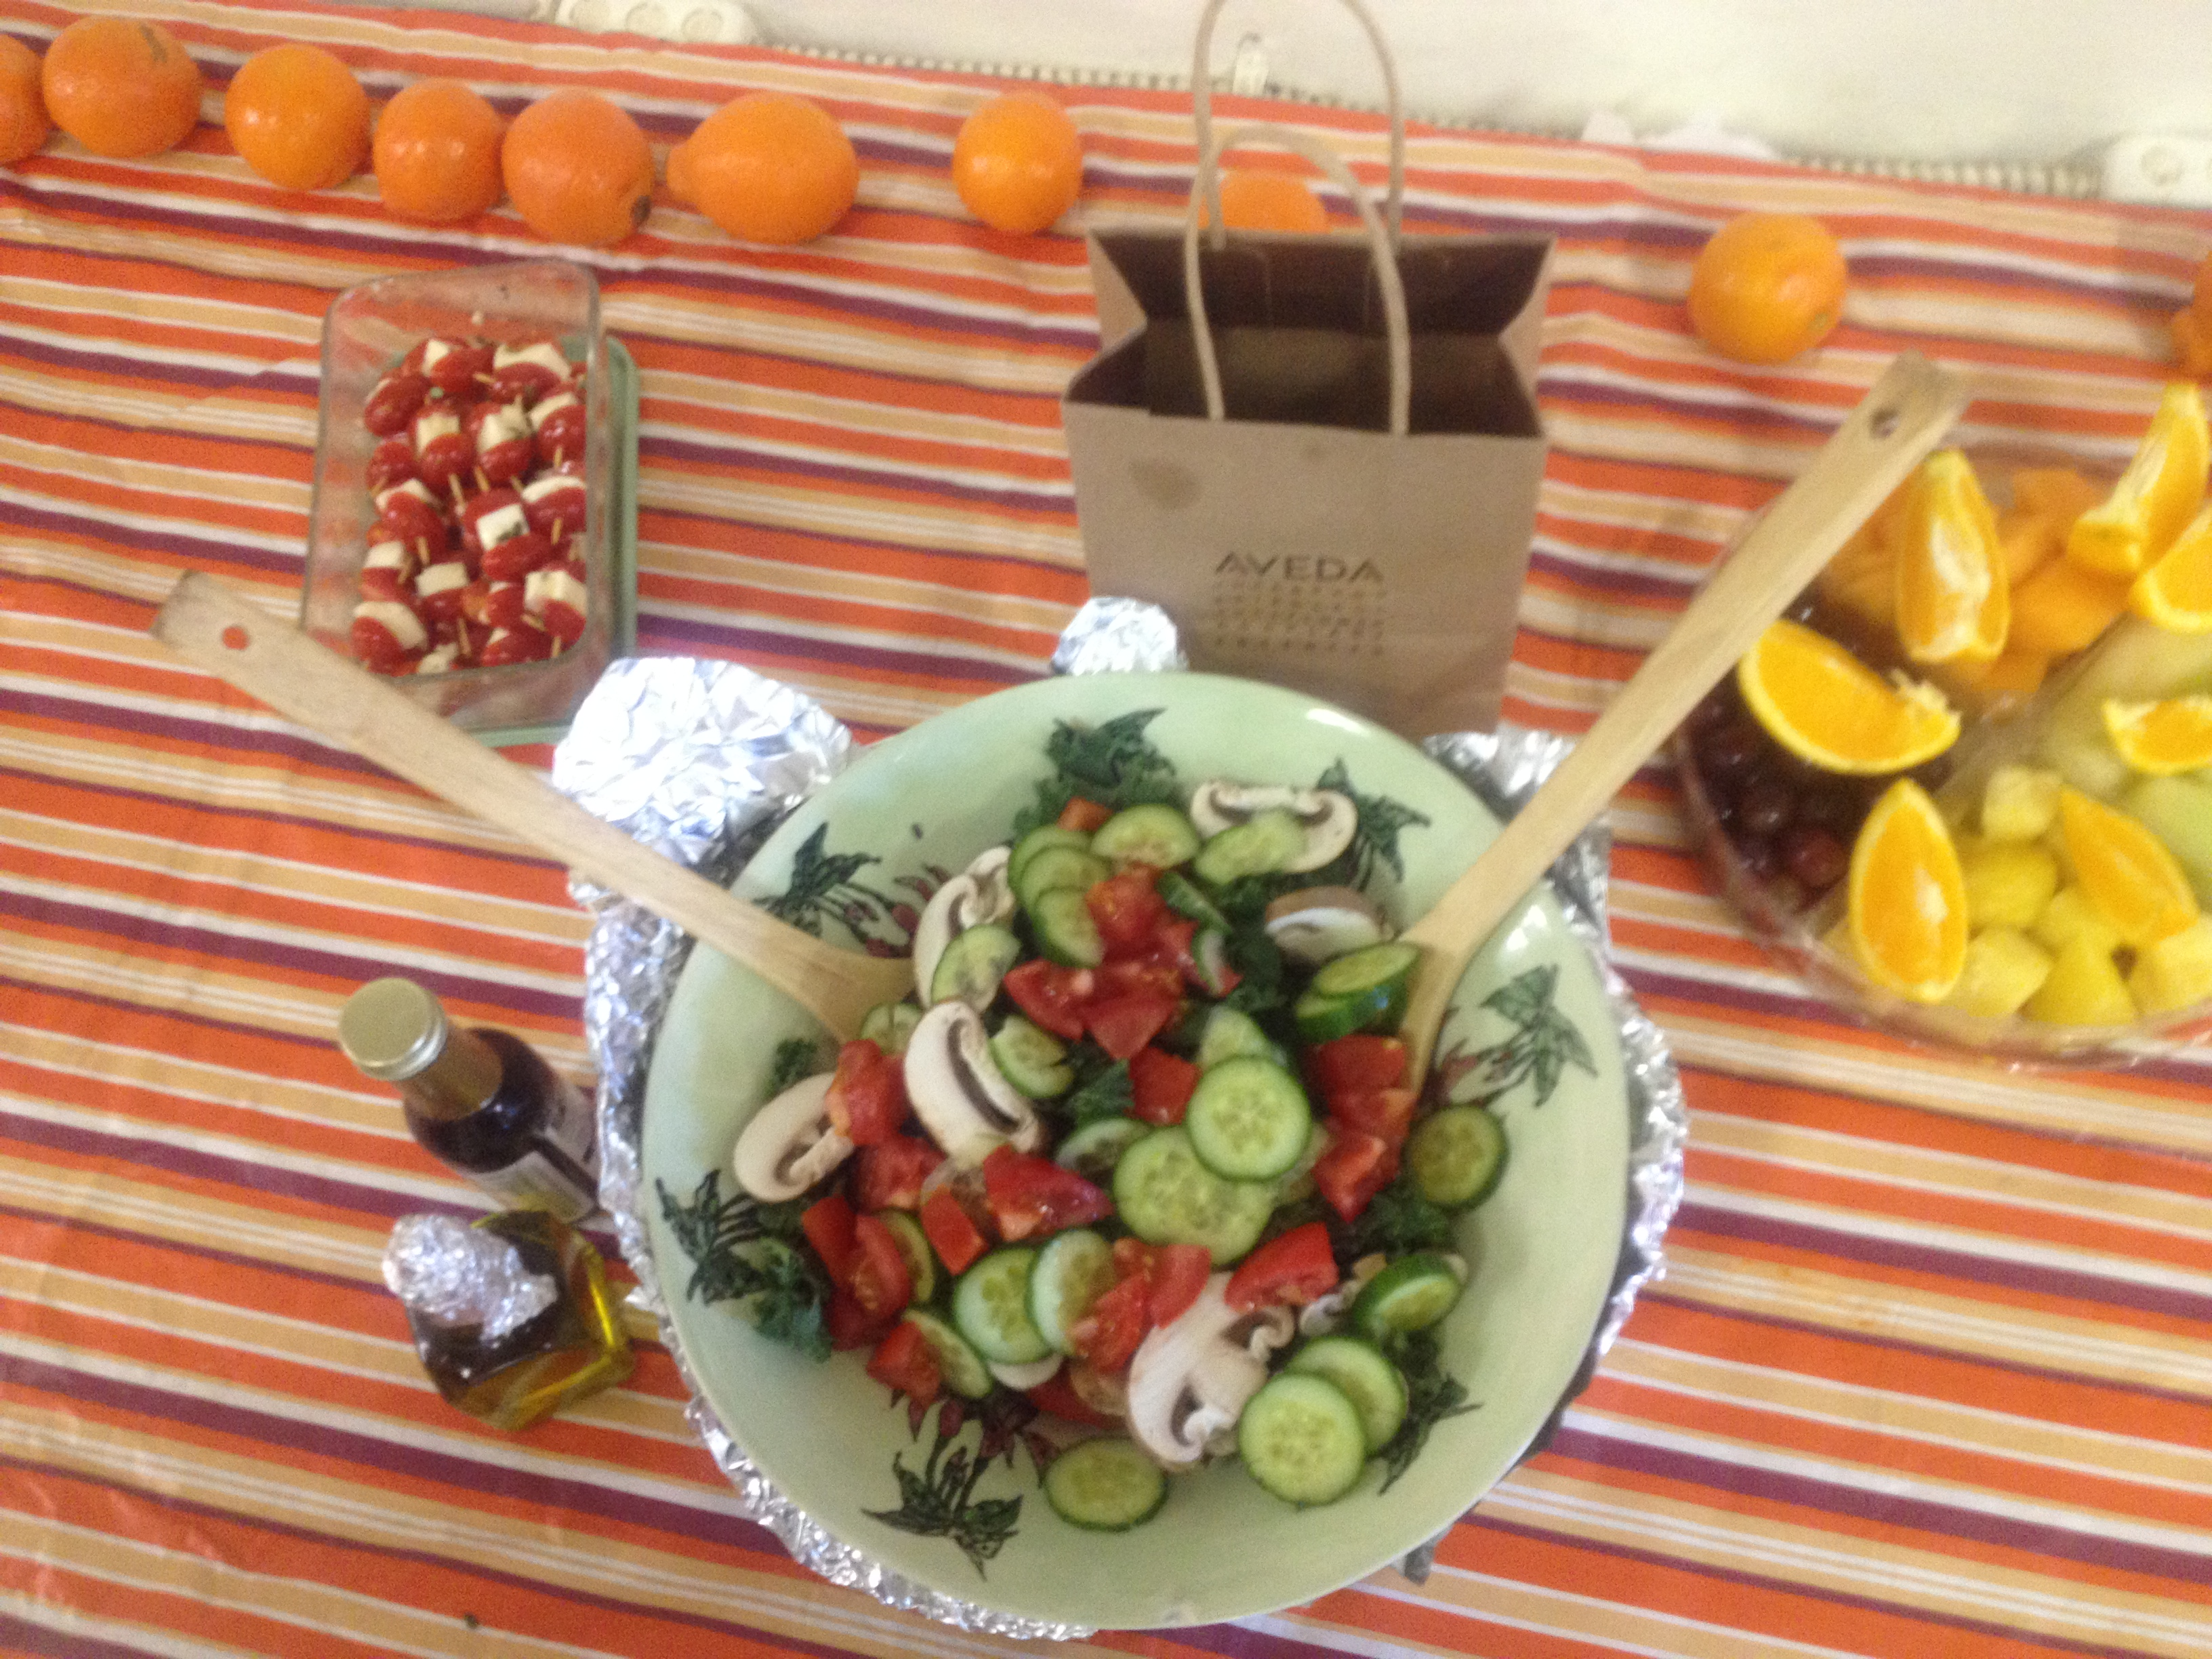 Salad At Potluck on March 20th